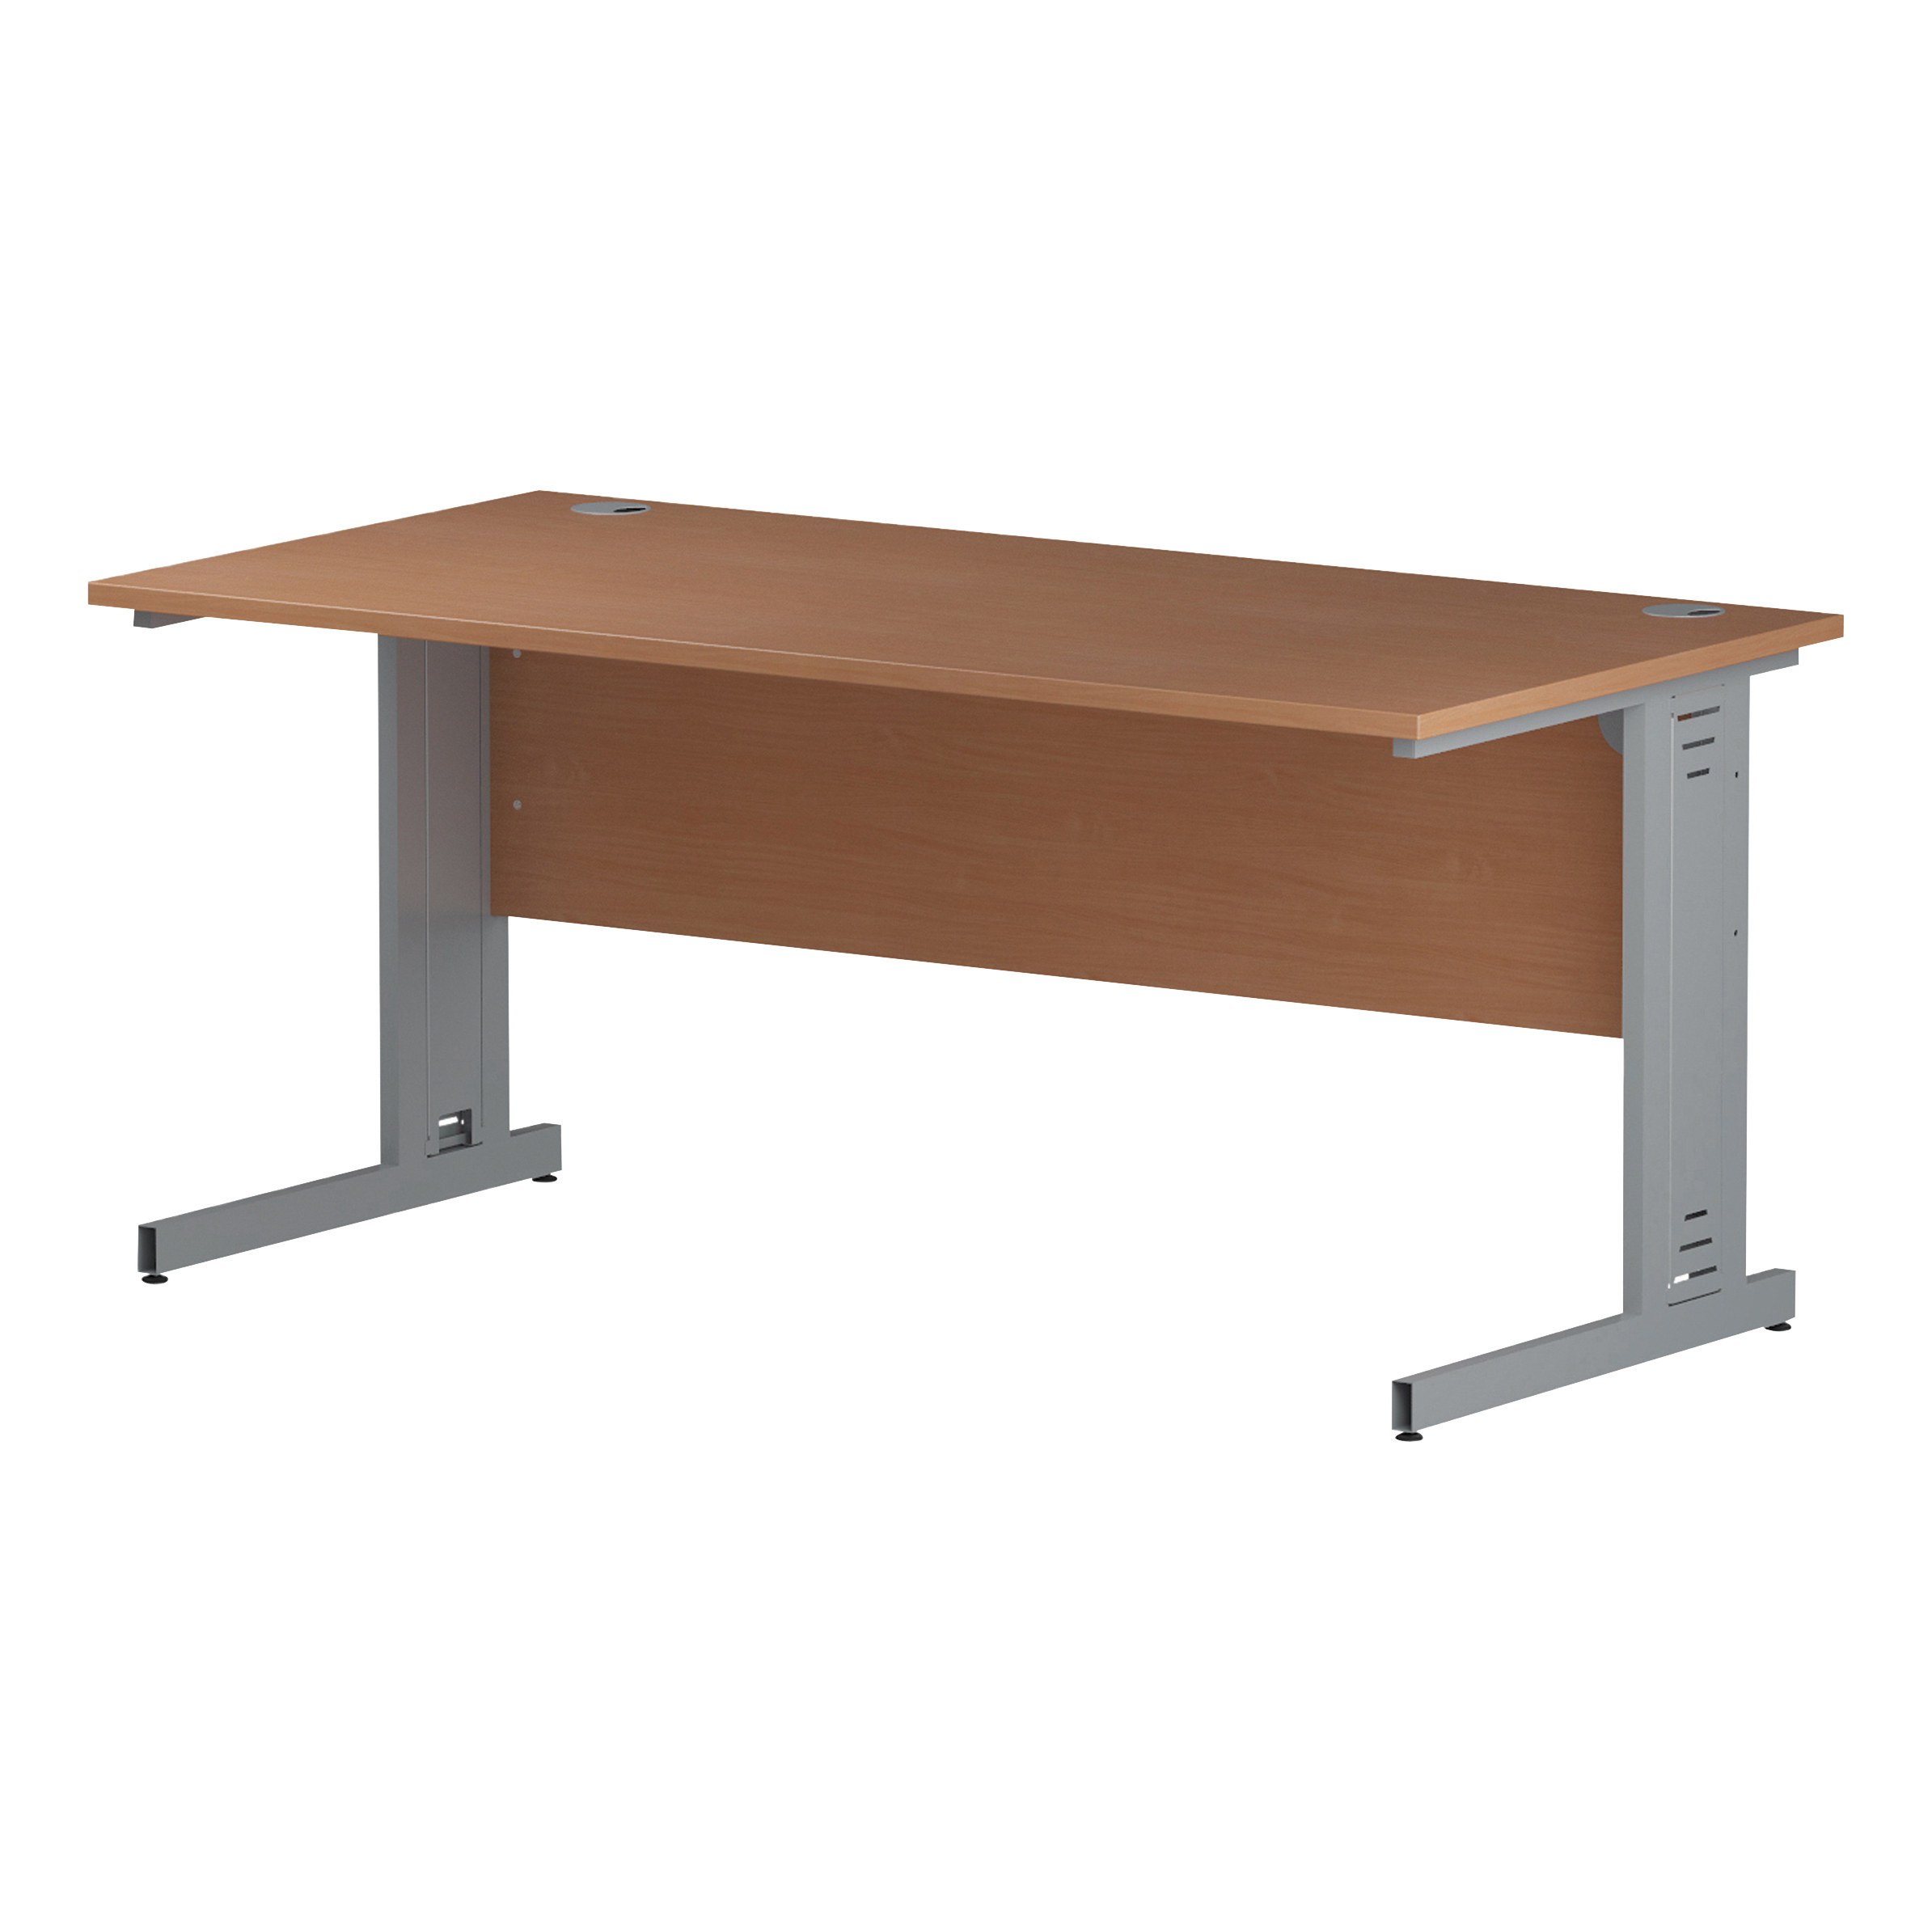 Trexus Rectangular Desk Silver Cable Managed Leg 1600x800mm Beech Ref I000461